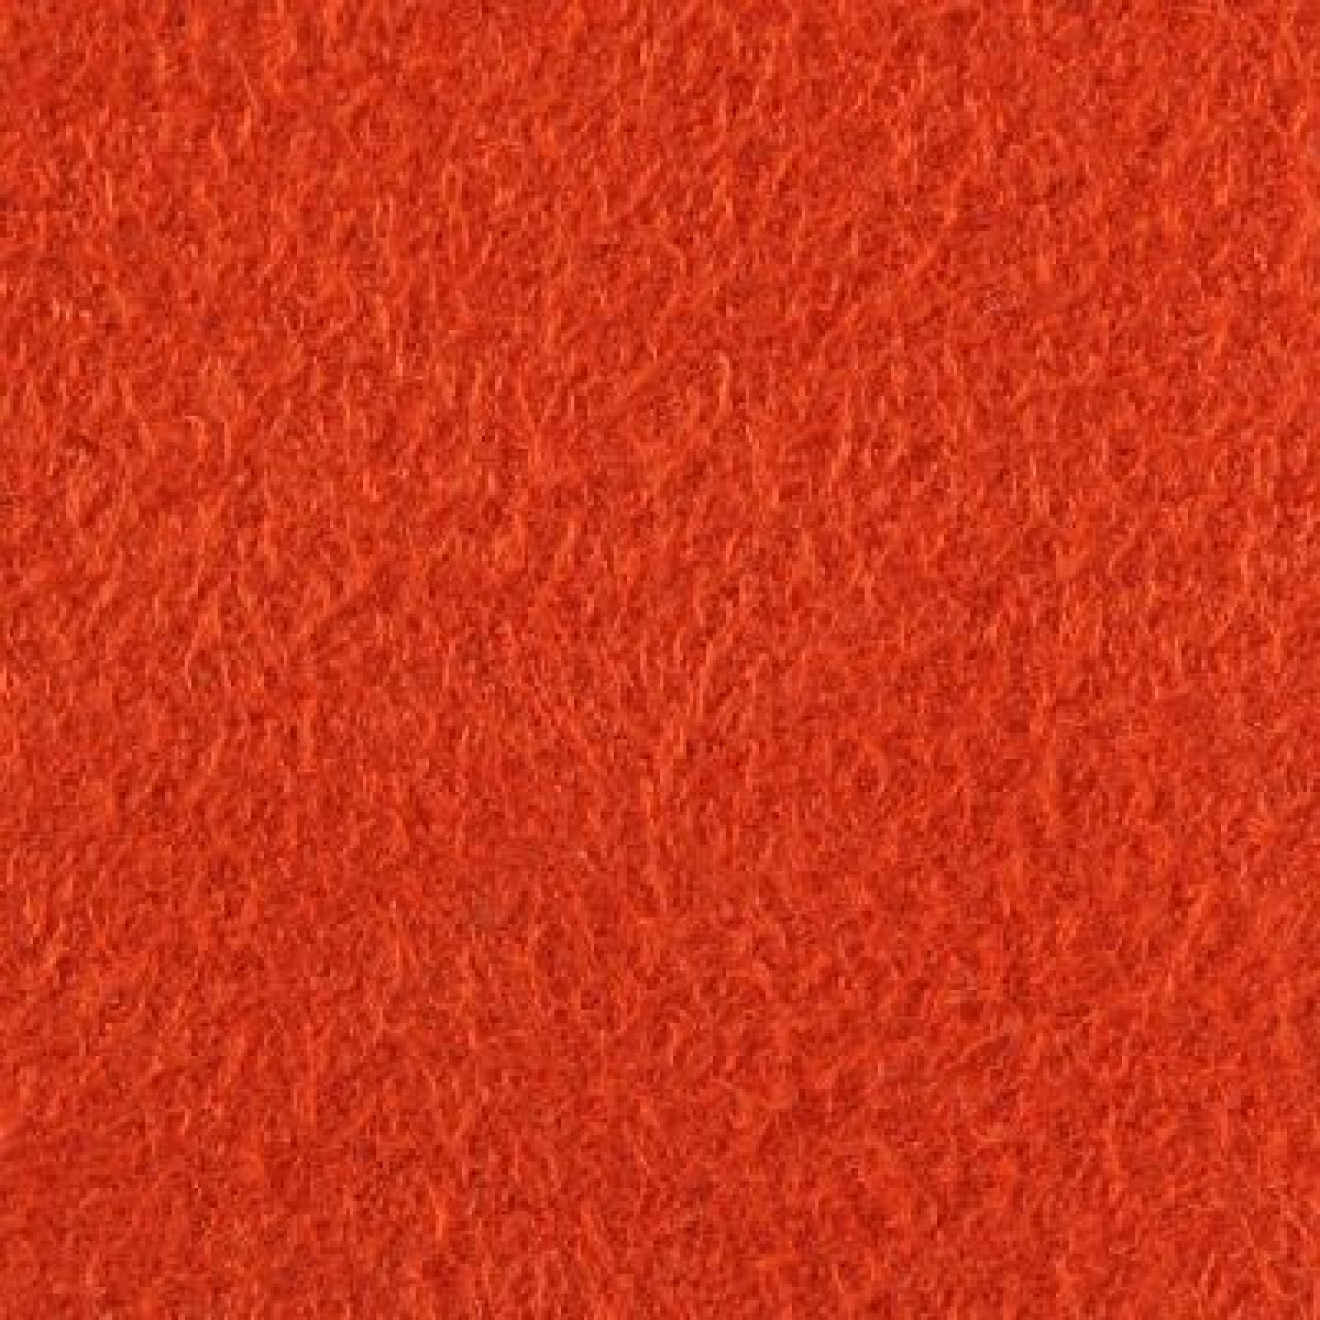 Viertelrolle - Velours 522 rot-orange